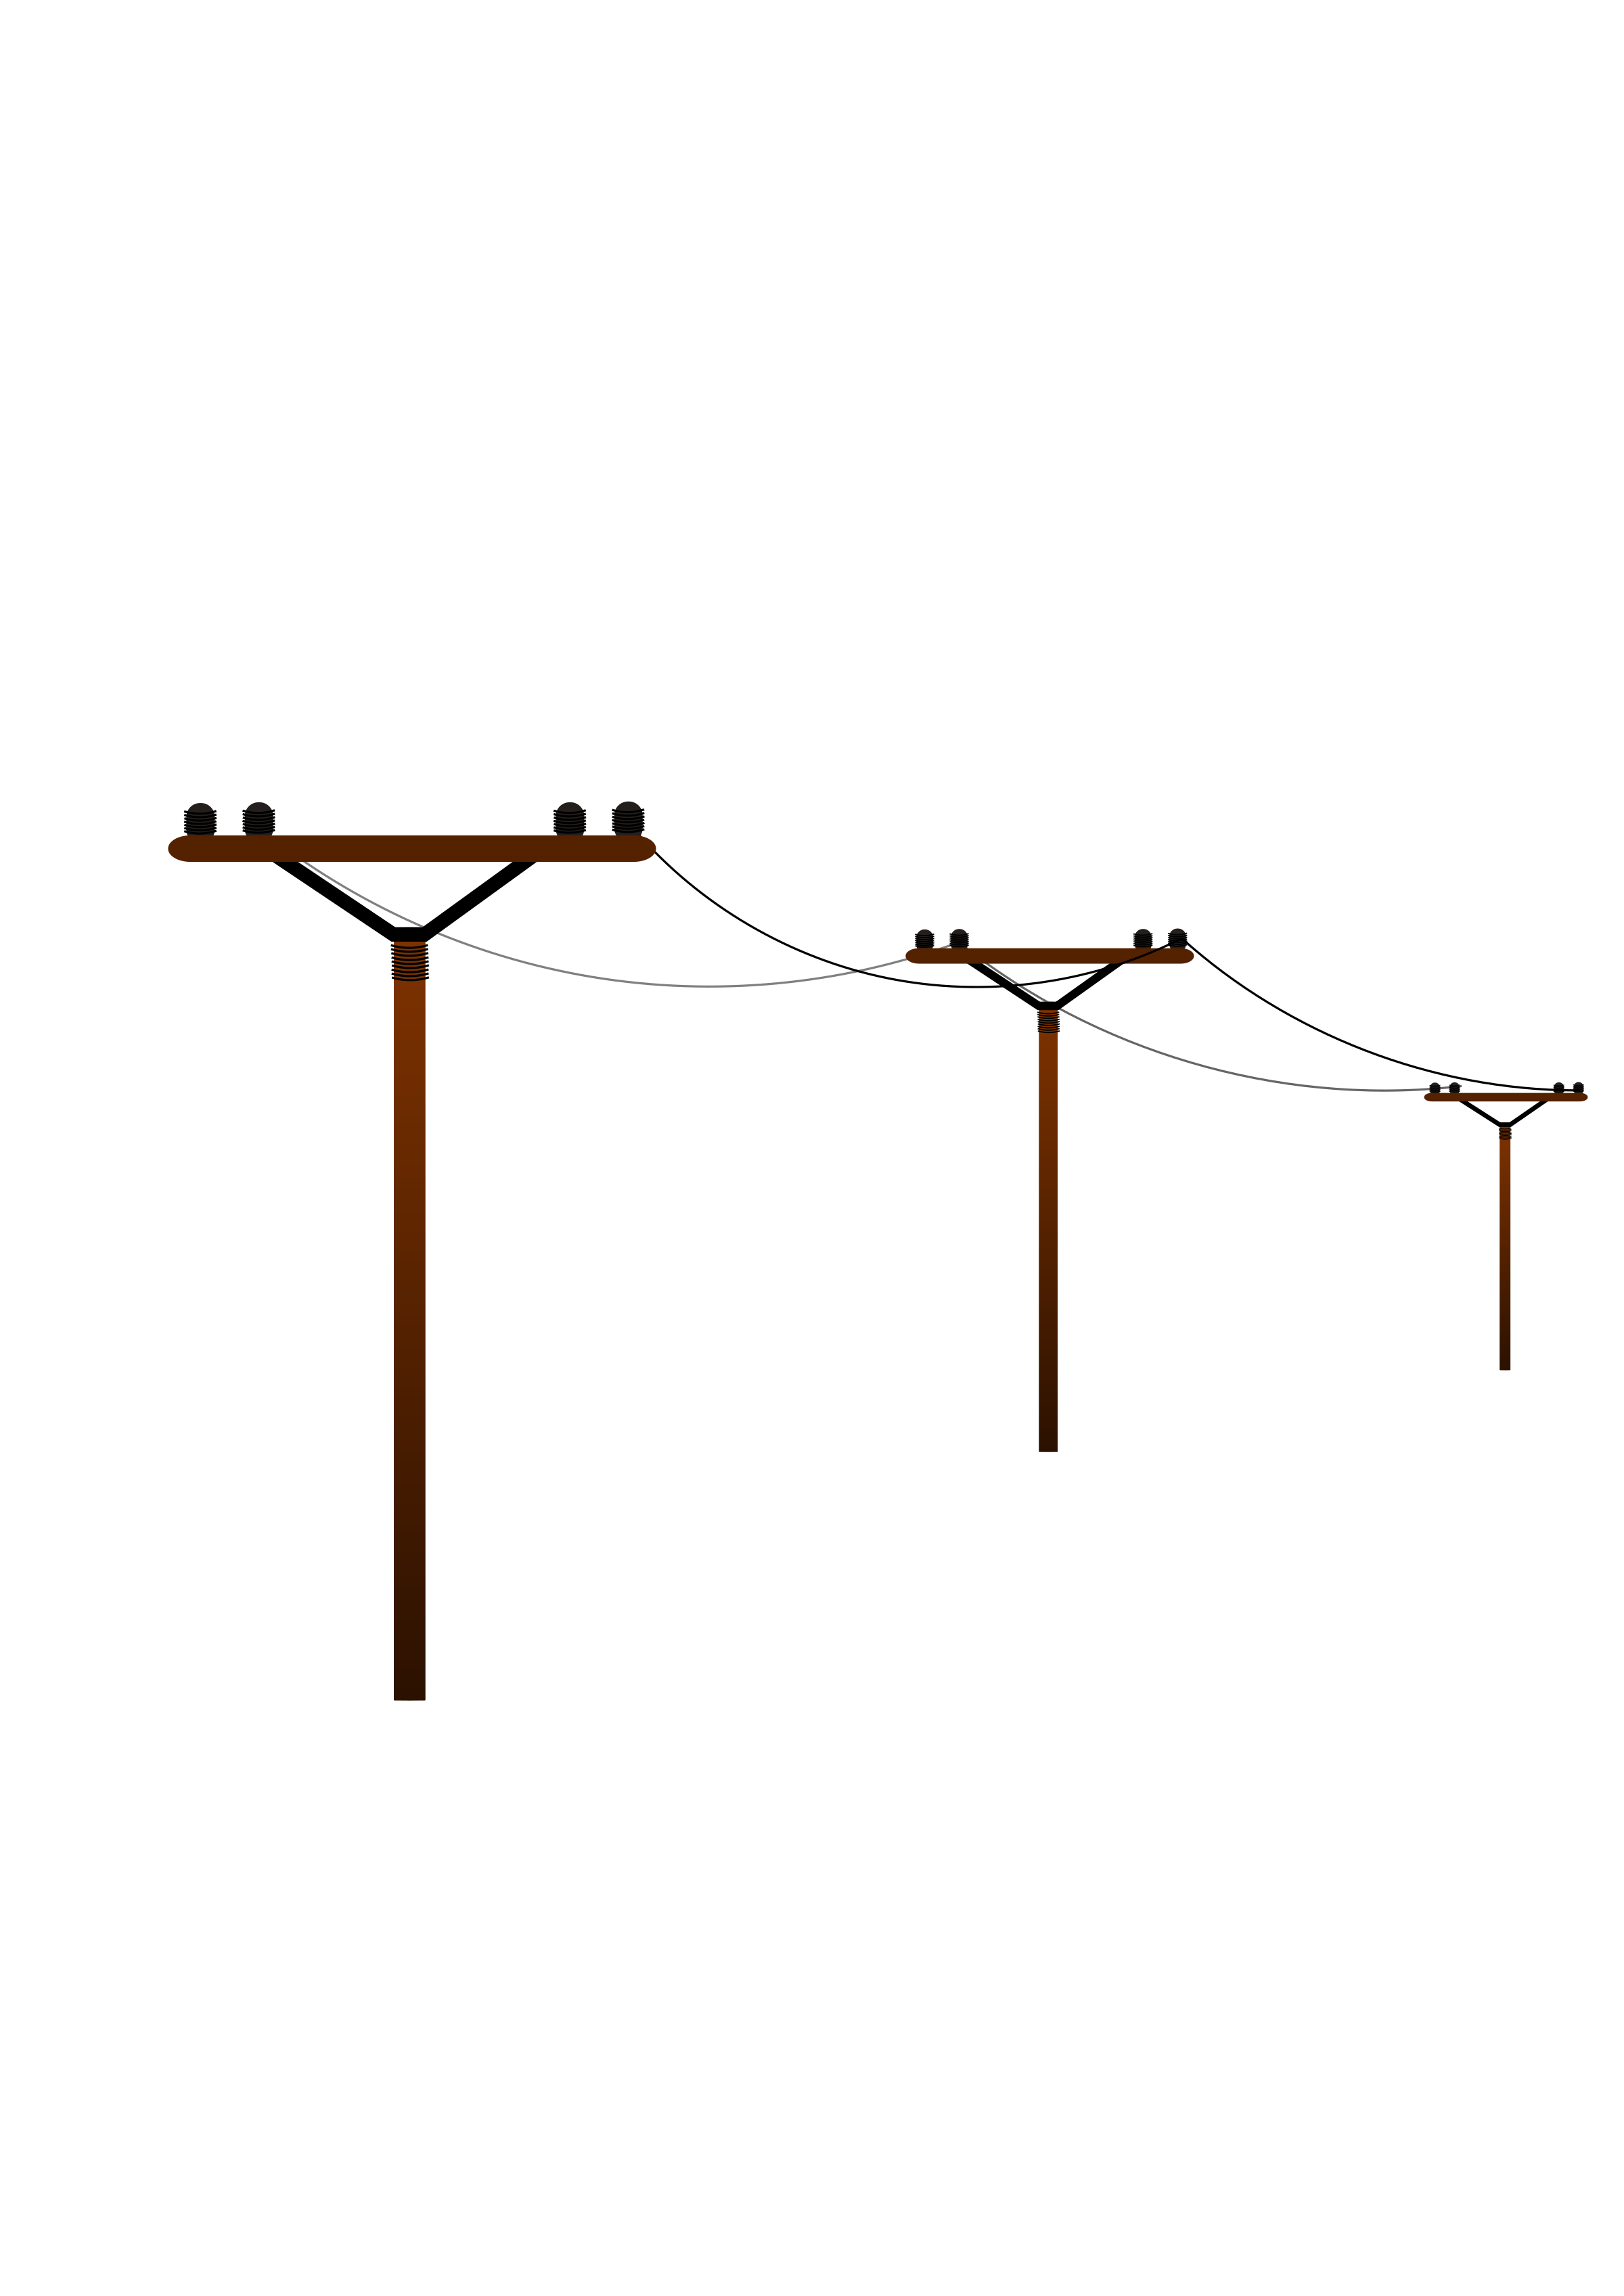 Utility Pole Drawing